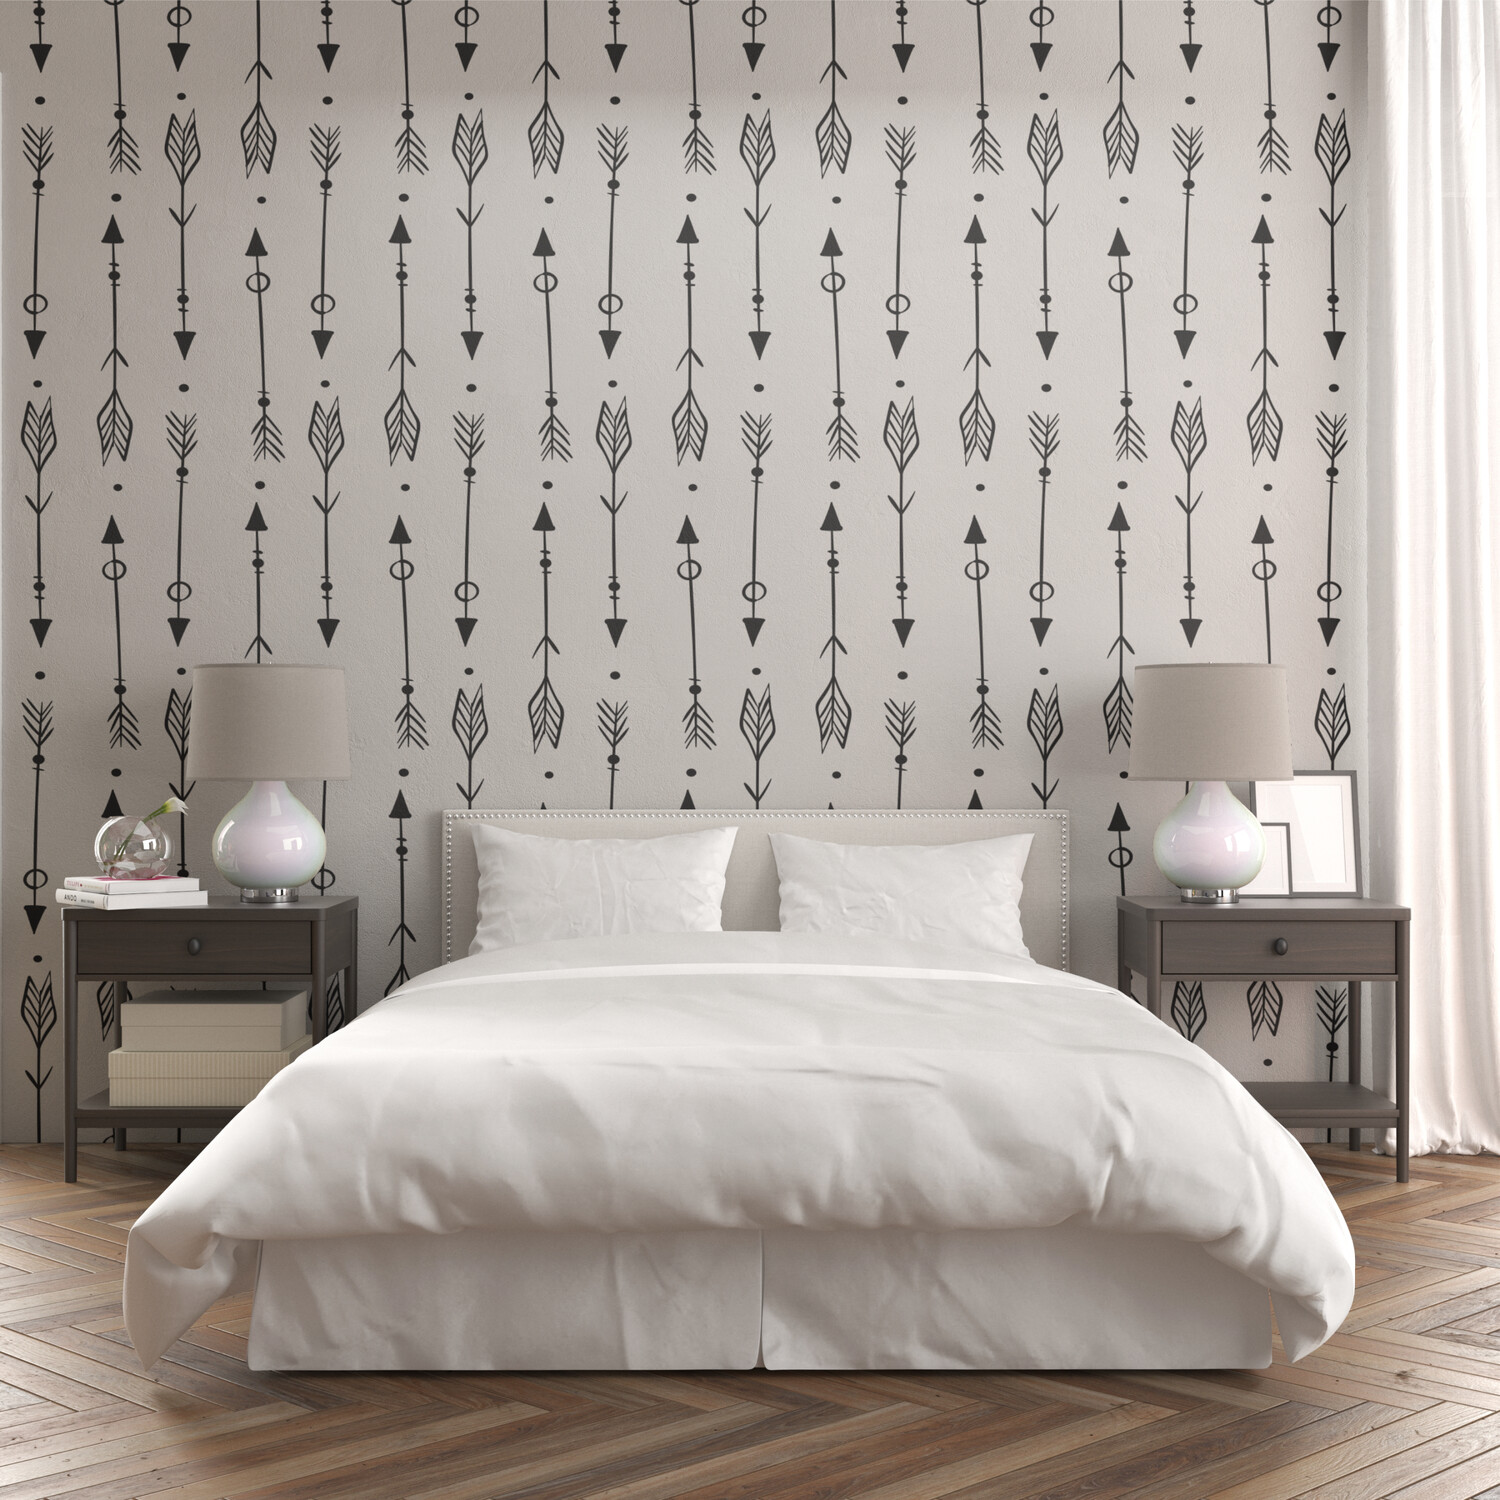 ARROWS | Vinyl Wall Wrap for Any Room | Removable Vinyl Wallpaper